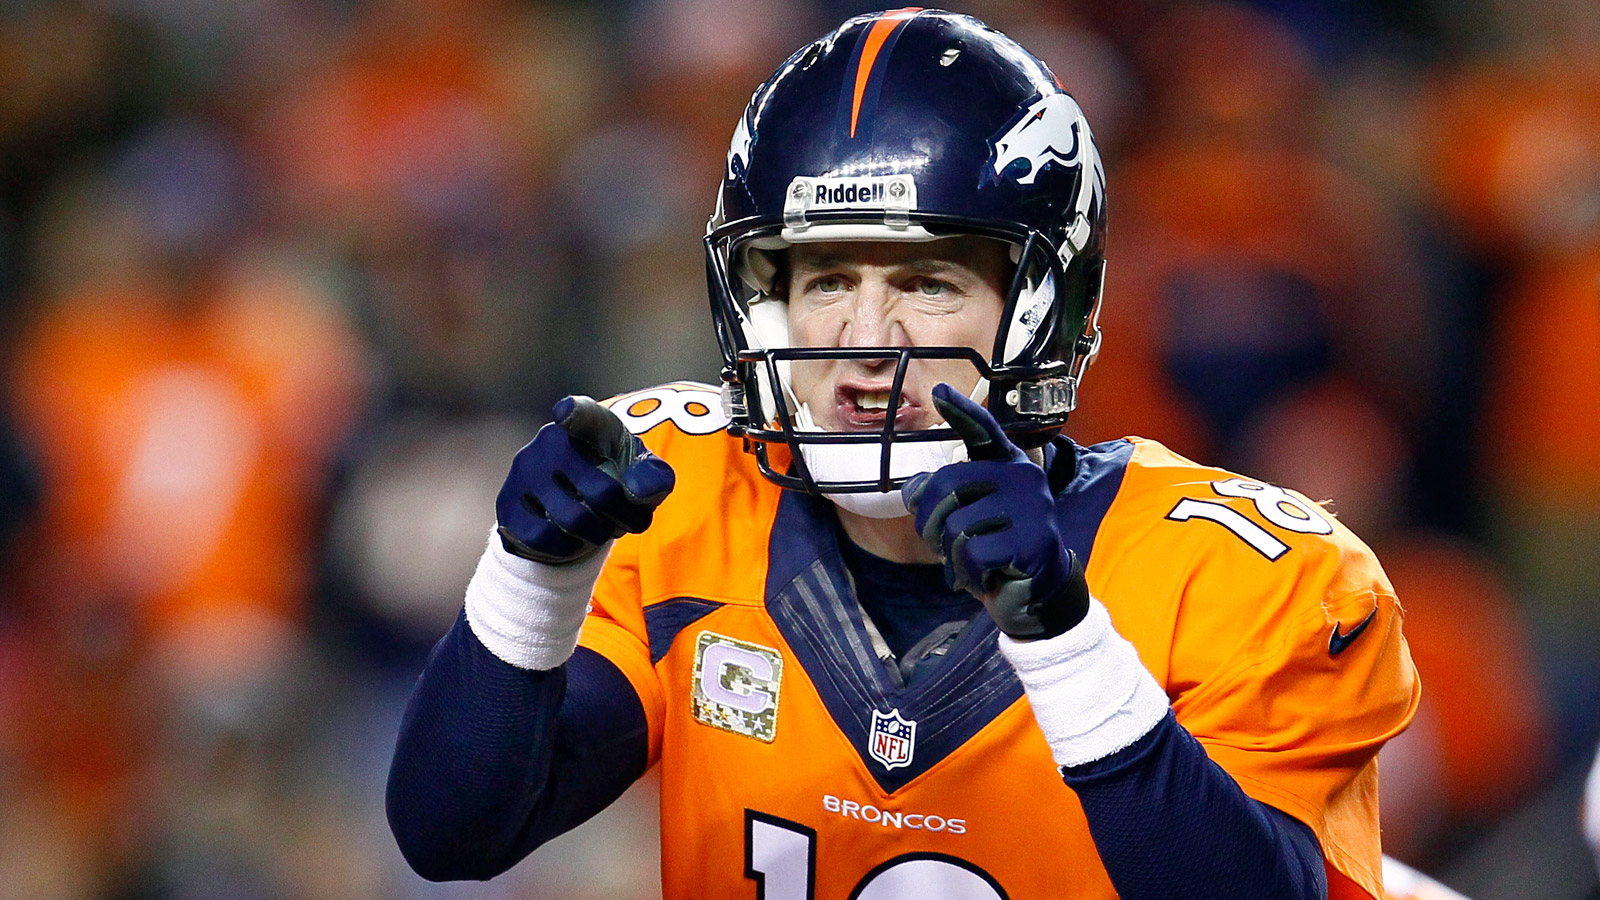 Broncos Rumors: Peyton Manning Contract To Be Completed This Week, Per Report